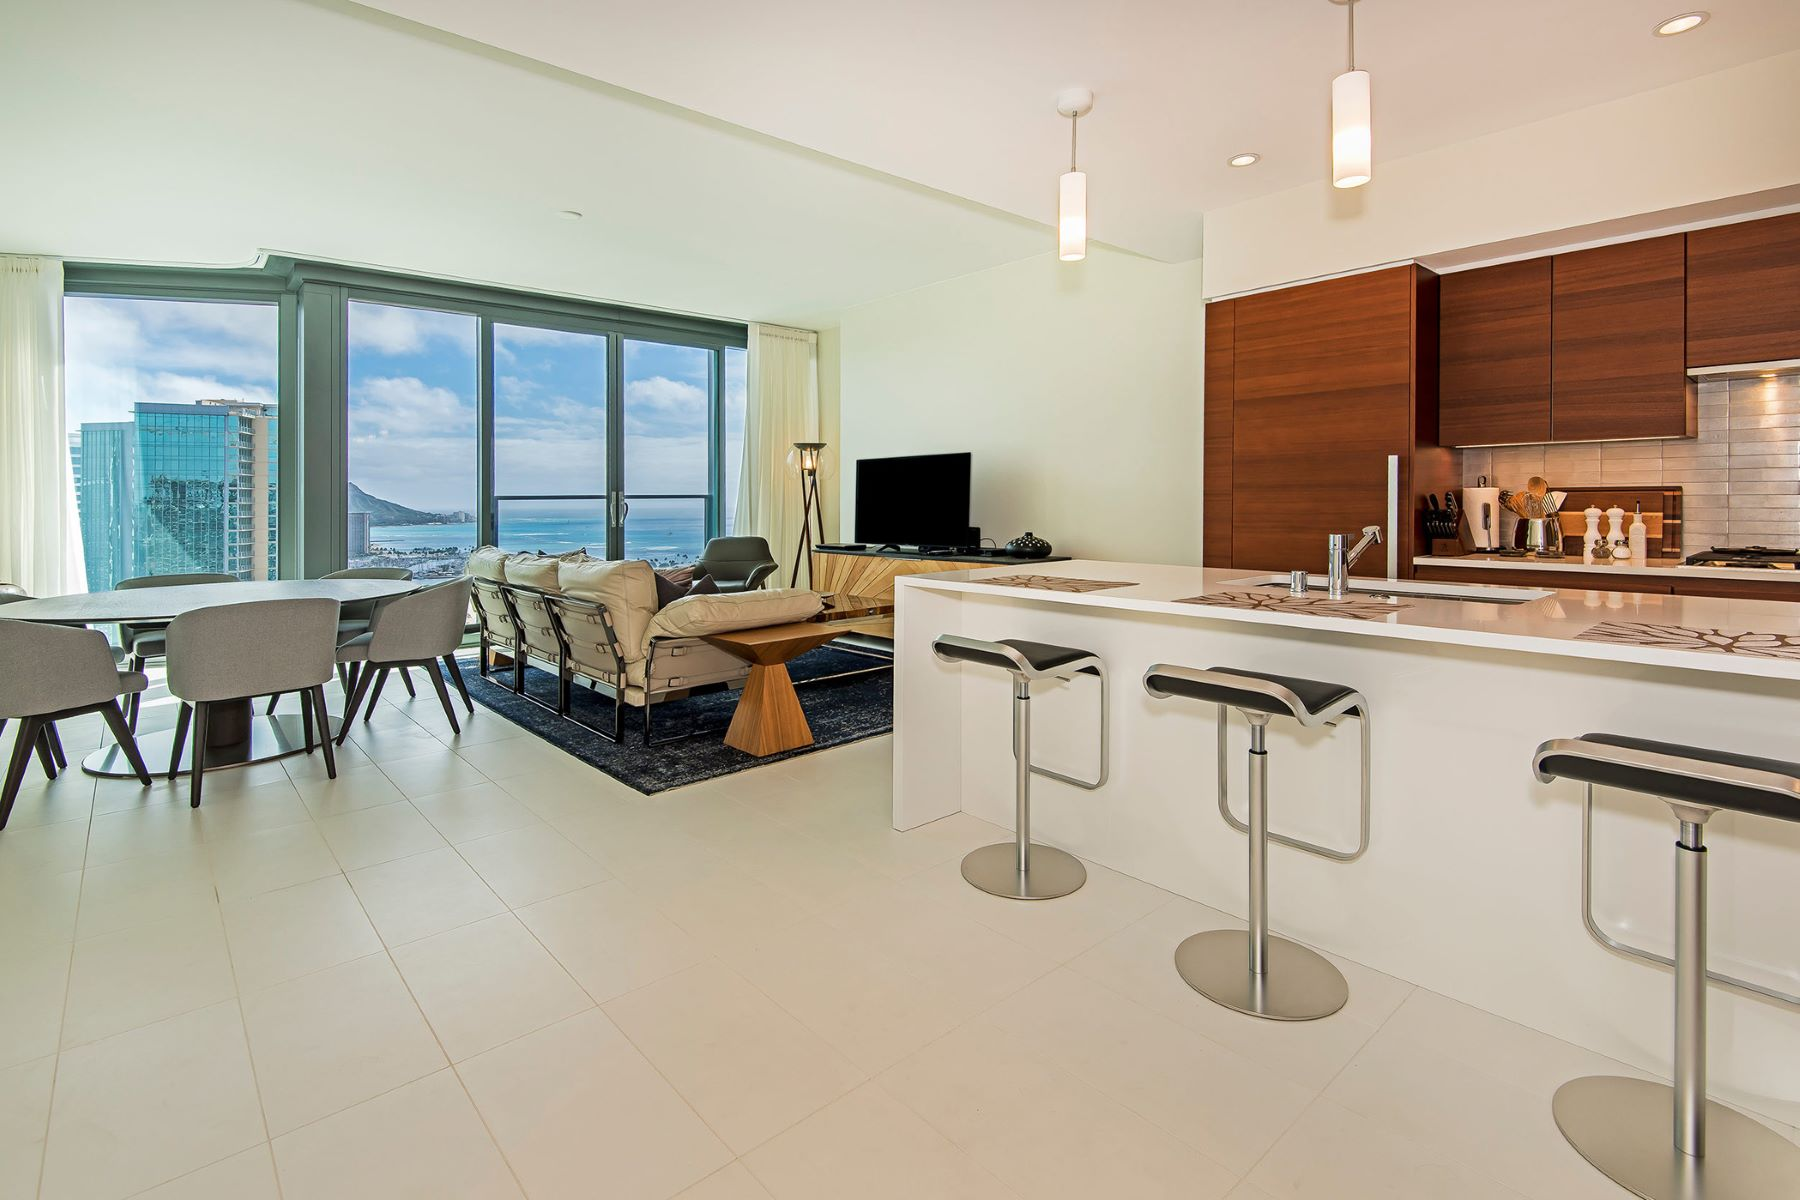 Condominium for Sale at Luxury in the Sky 1108 Auahi St #33-E Honolulu, Hawaii 96814 United States